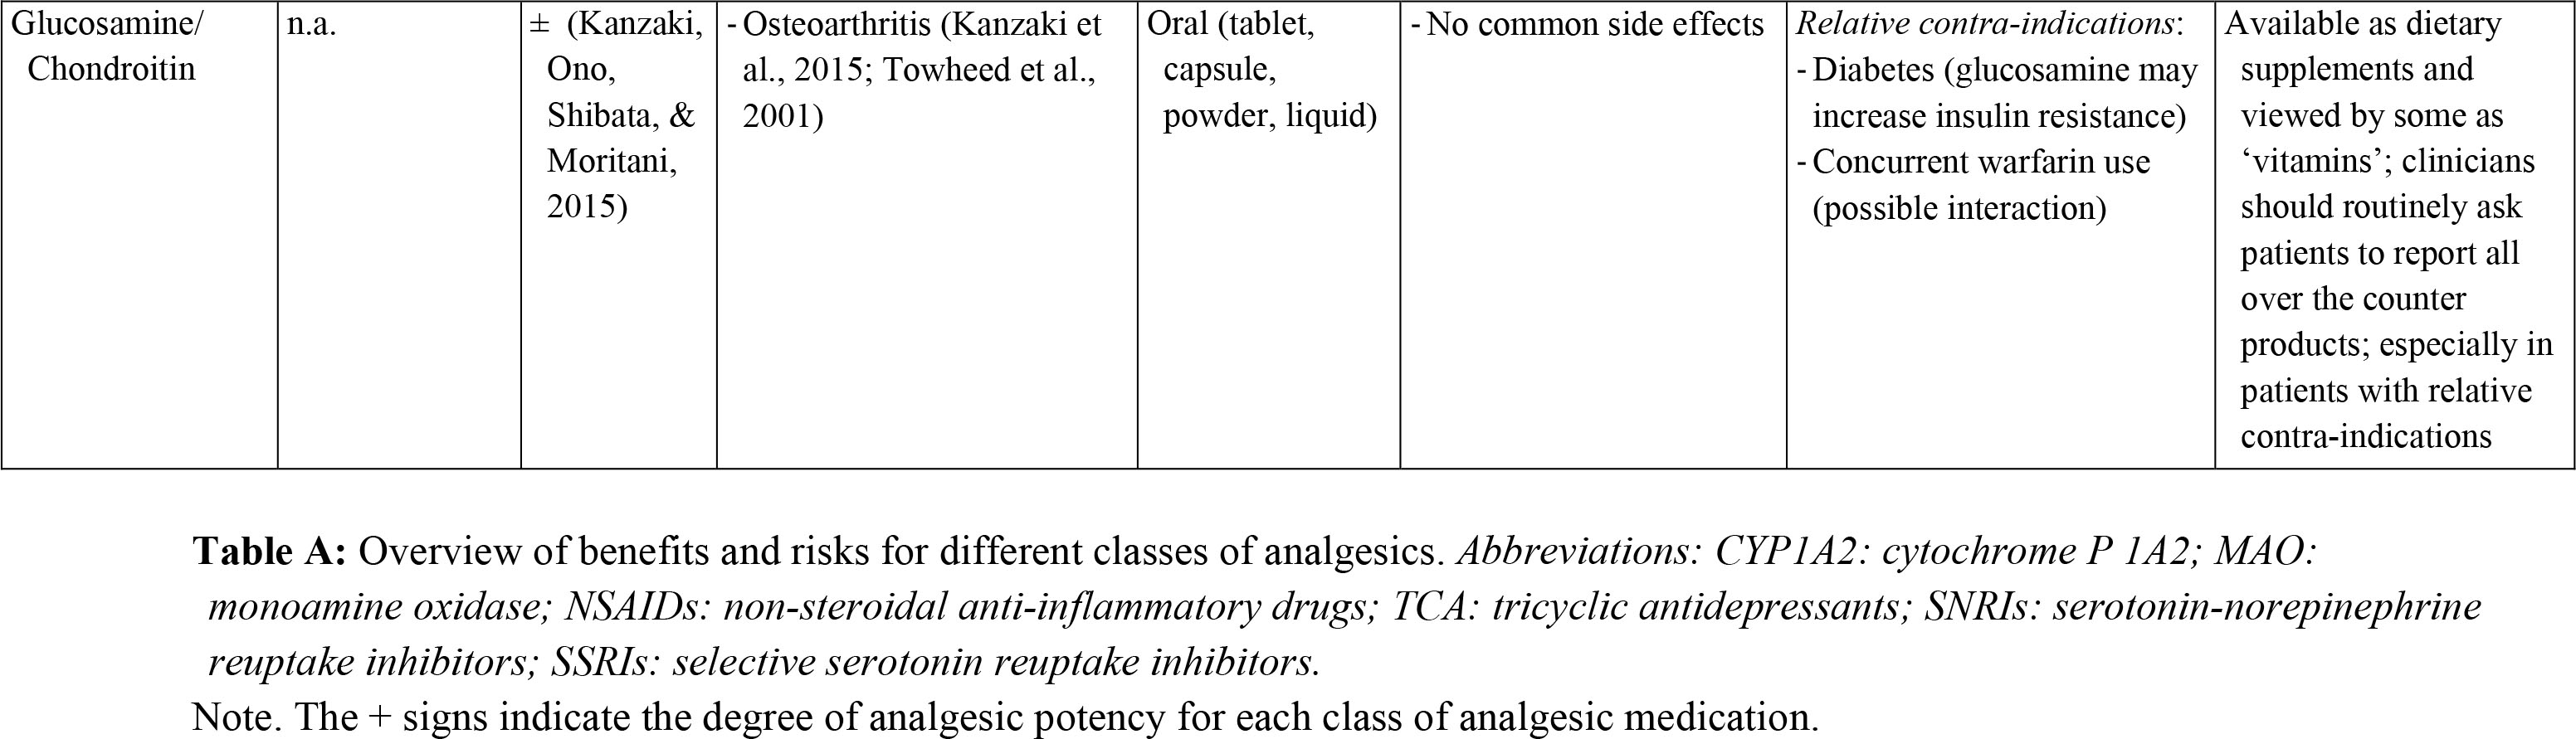 Benefits and risks of commonly prescribed analgesic medication classes.